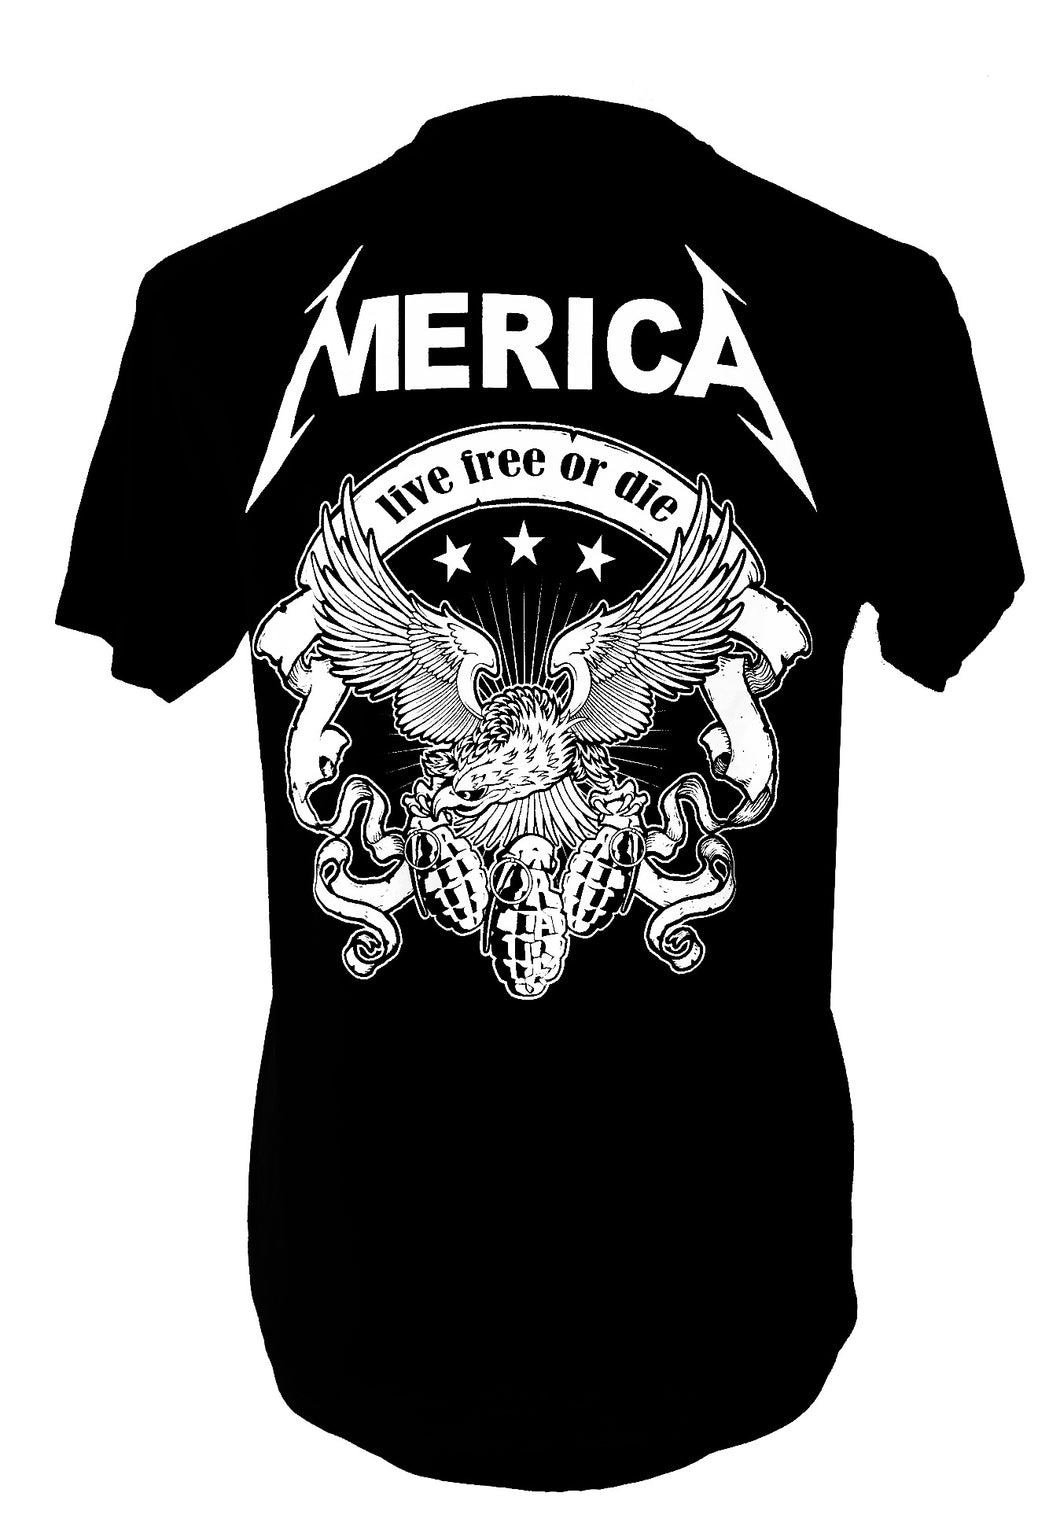 MERICA LIVE FREE OR DIE MEN'S TEE - Trailsclothing.com